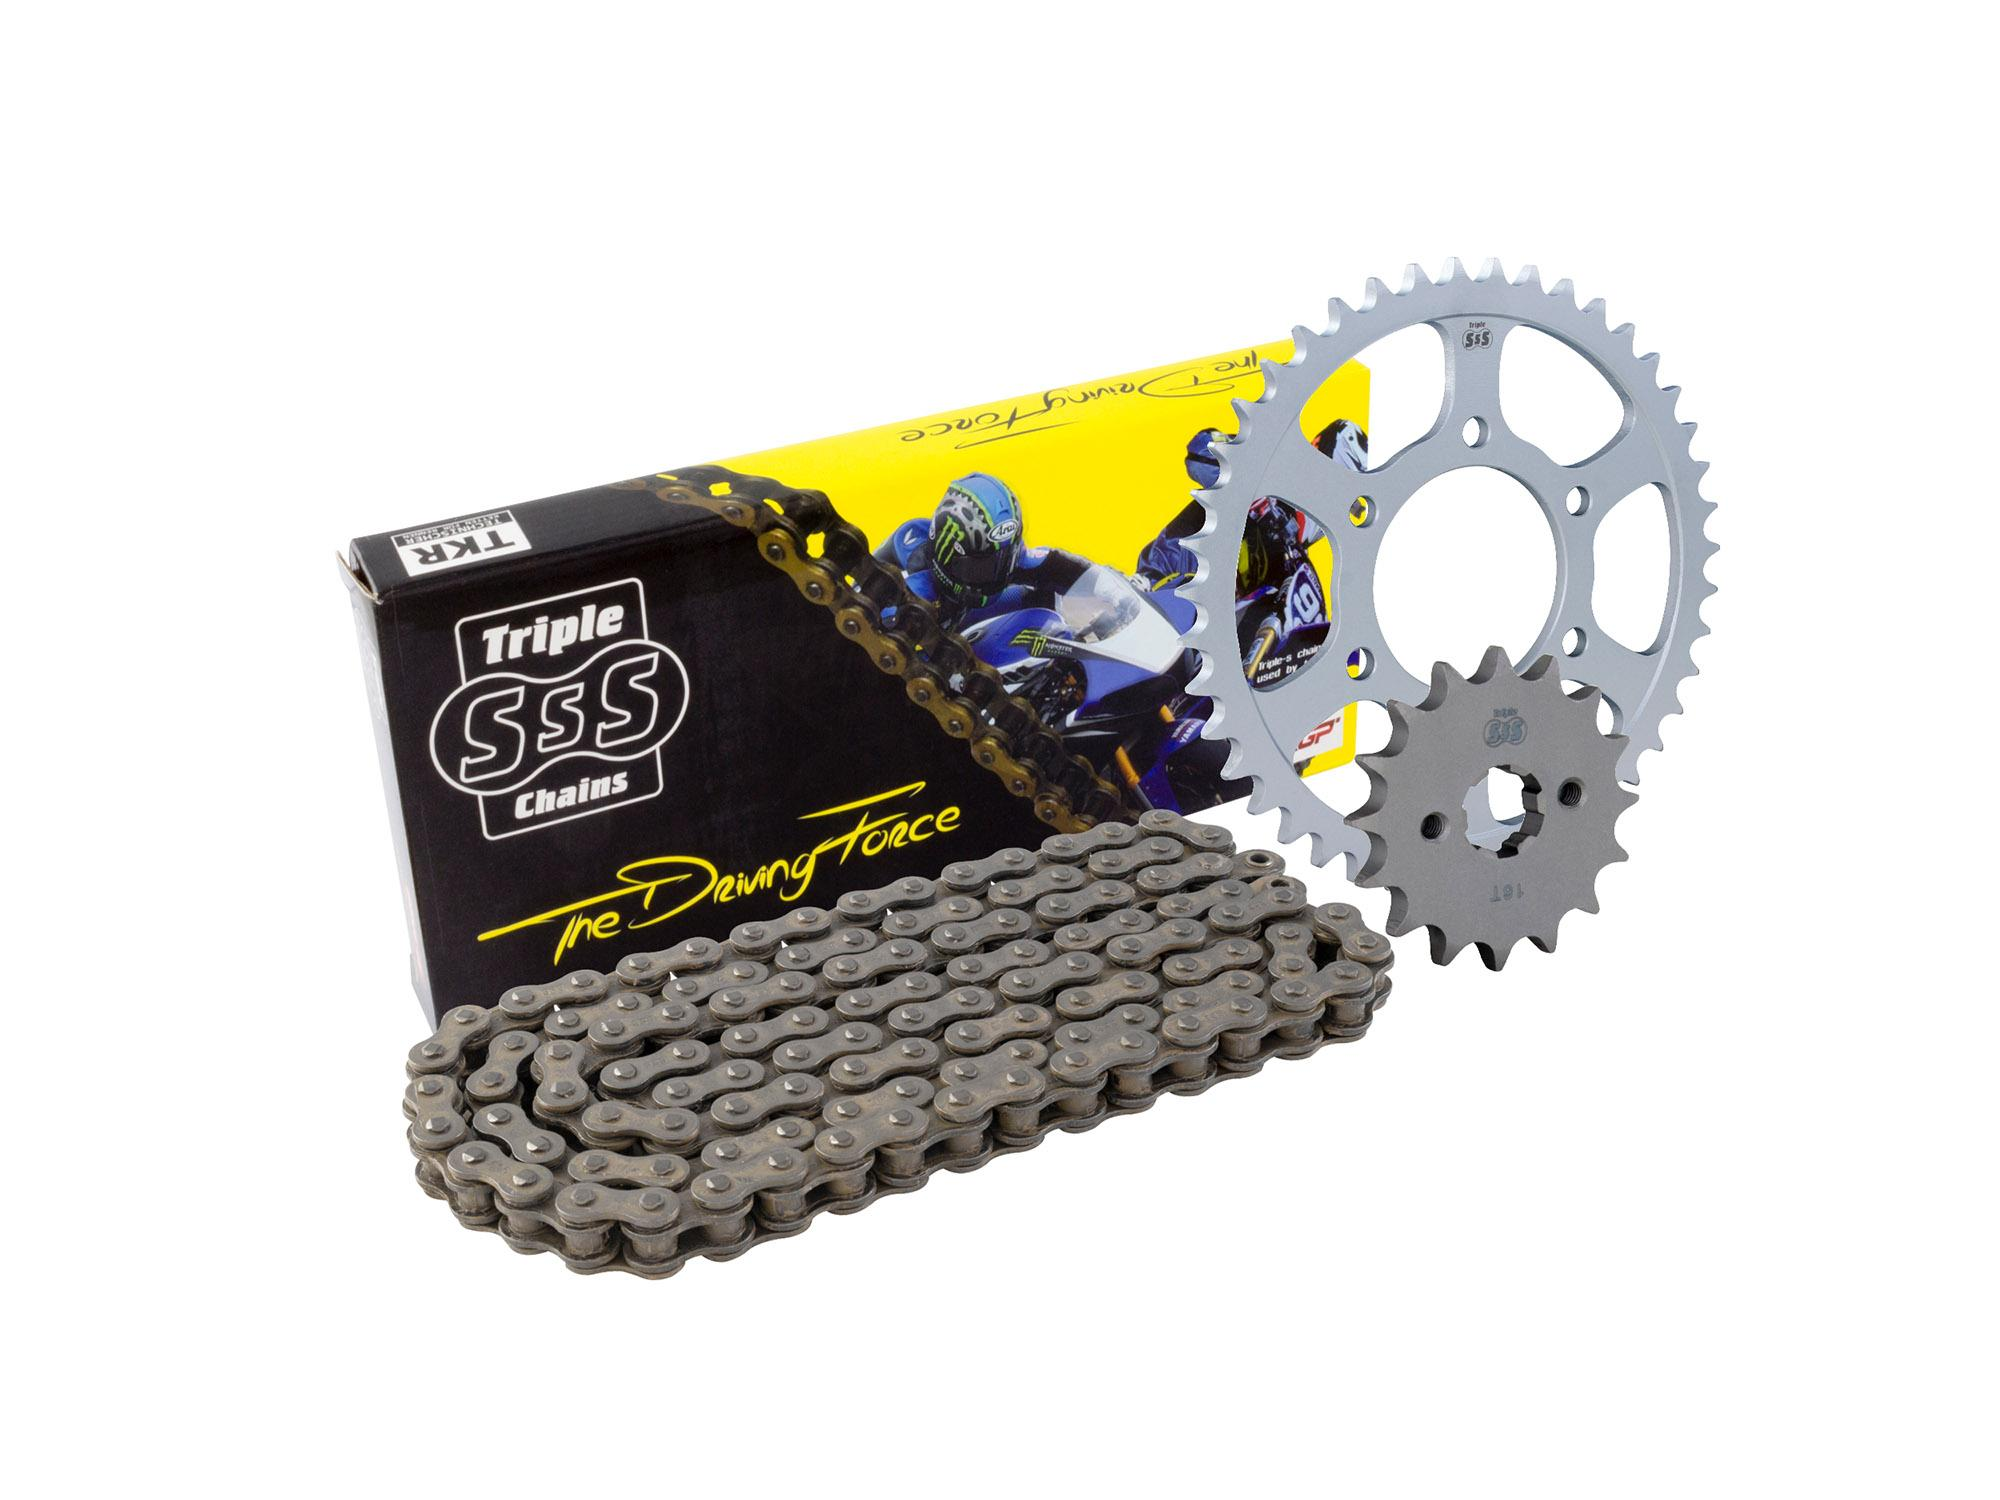 Honda CB500 F / FA 13-15 Chain & Sprocket Kit: 15T Front, 41T Rear, HD O-Ring Black Chain 520H 112Link